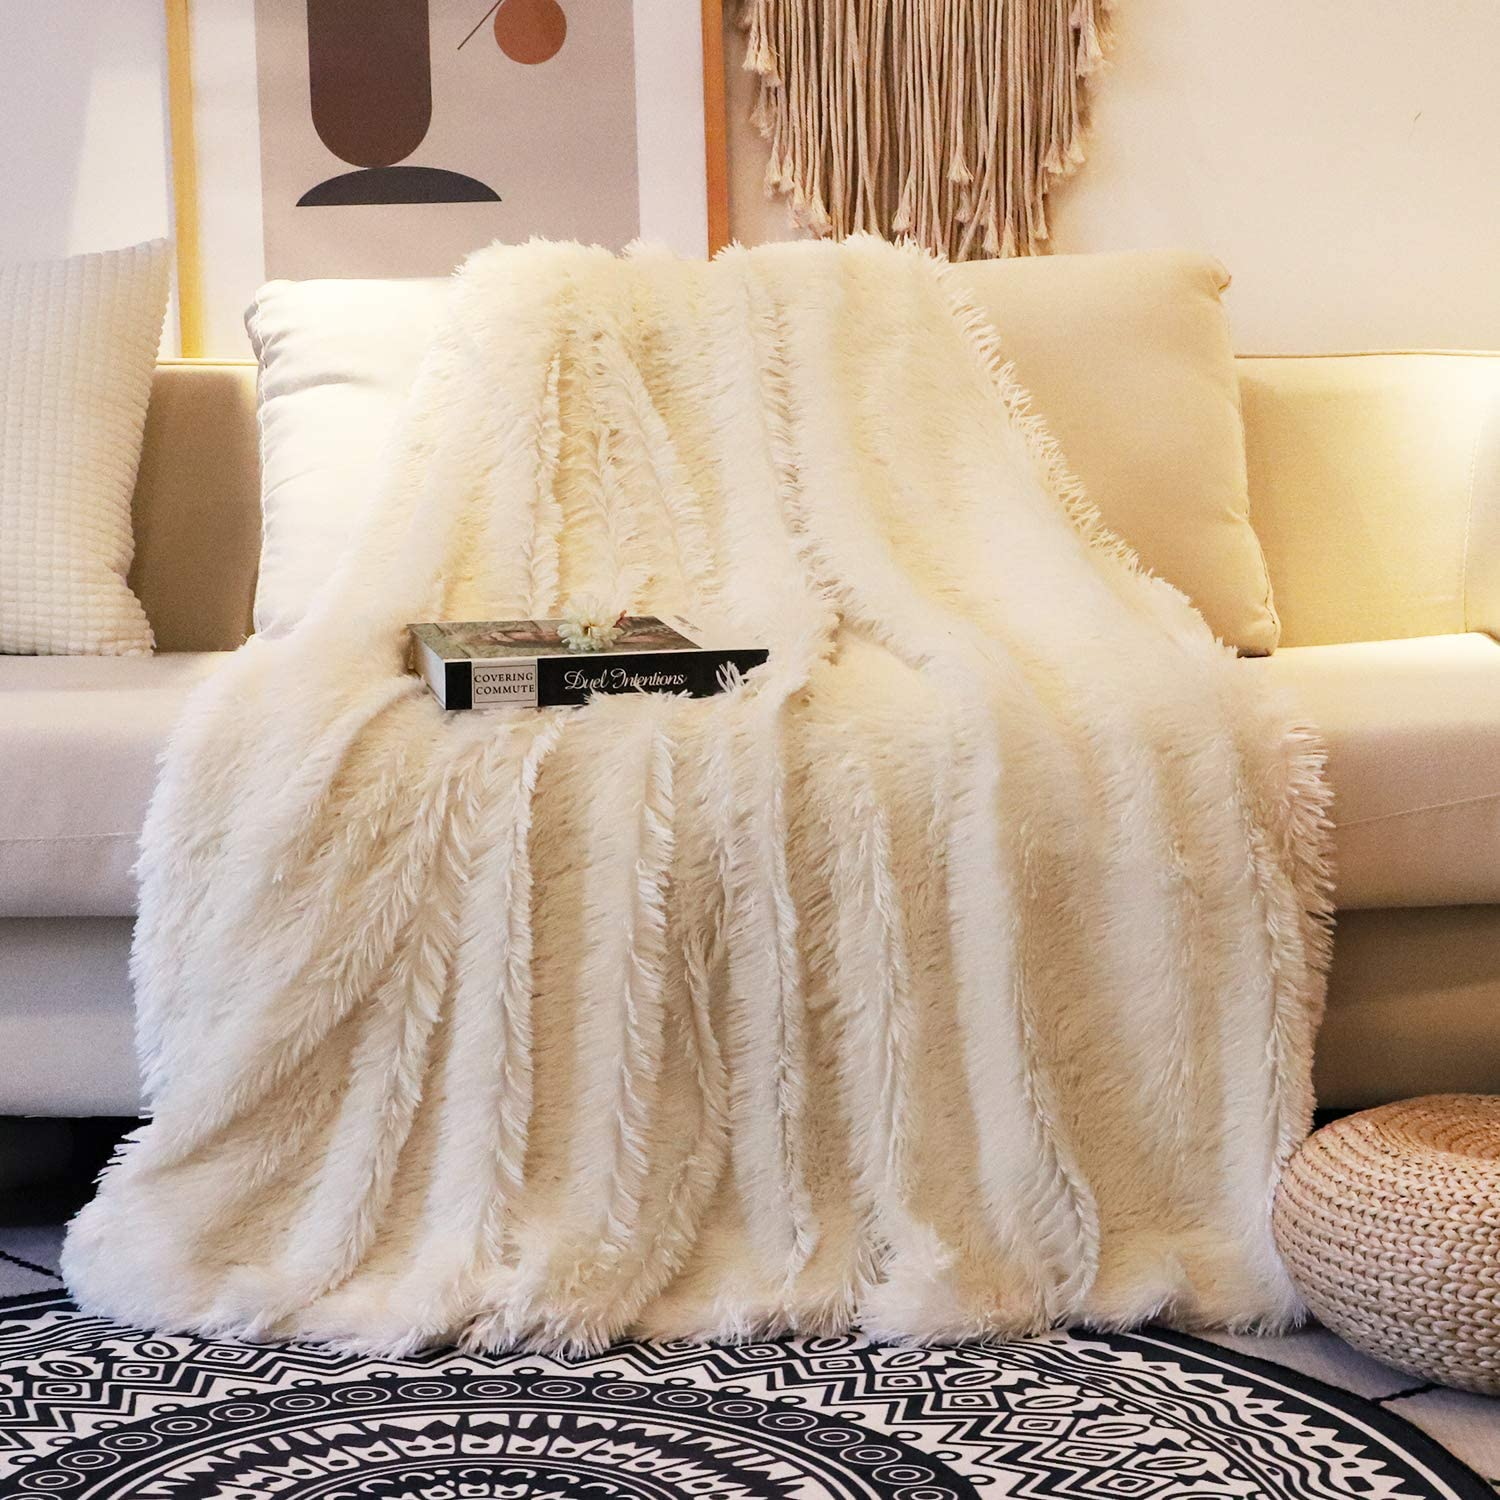 "Decorative Extra Soft Faux Fur Blanket Queen Size 78"" x 90"",Solid Reversible Fuzzy Lightweight Long Hair Shaggy Blanket,Fluffy Cozy Plush Fleece Comfy Microfiber Blanket for Couch Sofa Bed,Cream White"